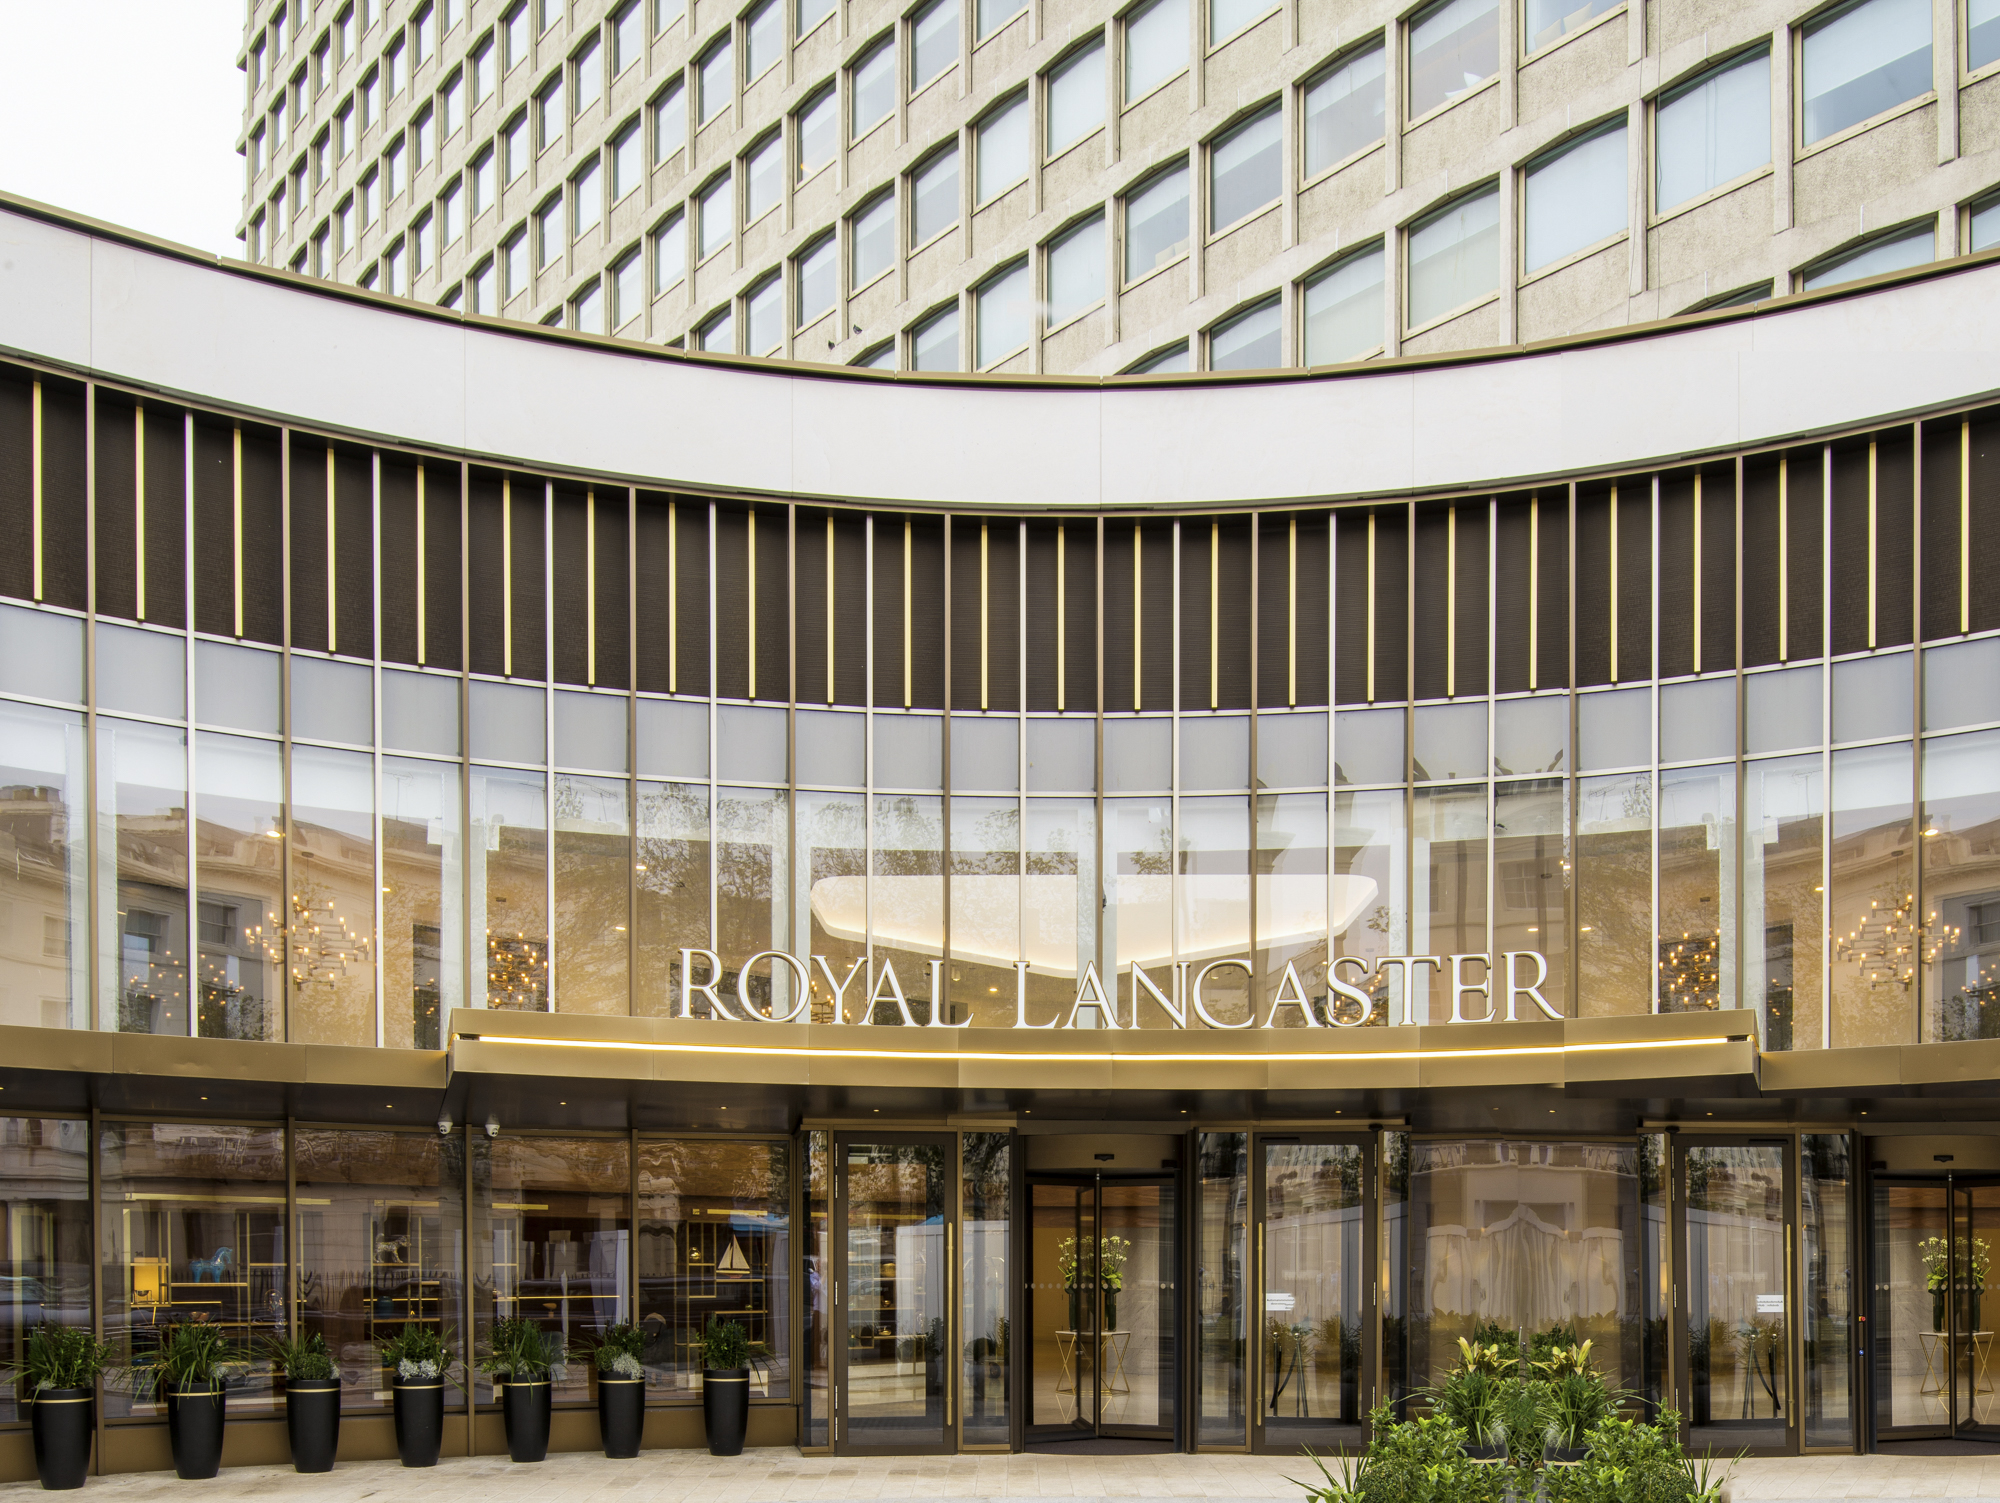 Entrance Doors at the Royal Lancaster London Hotel